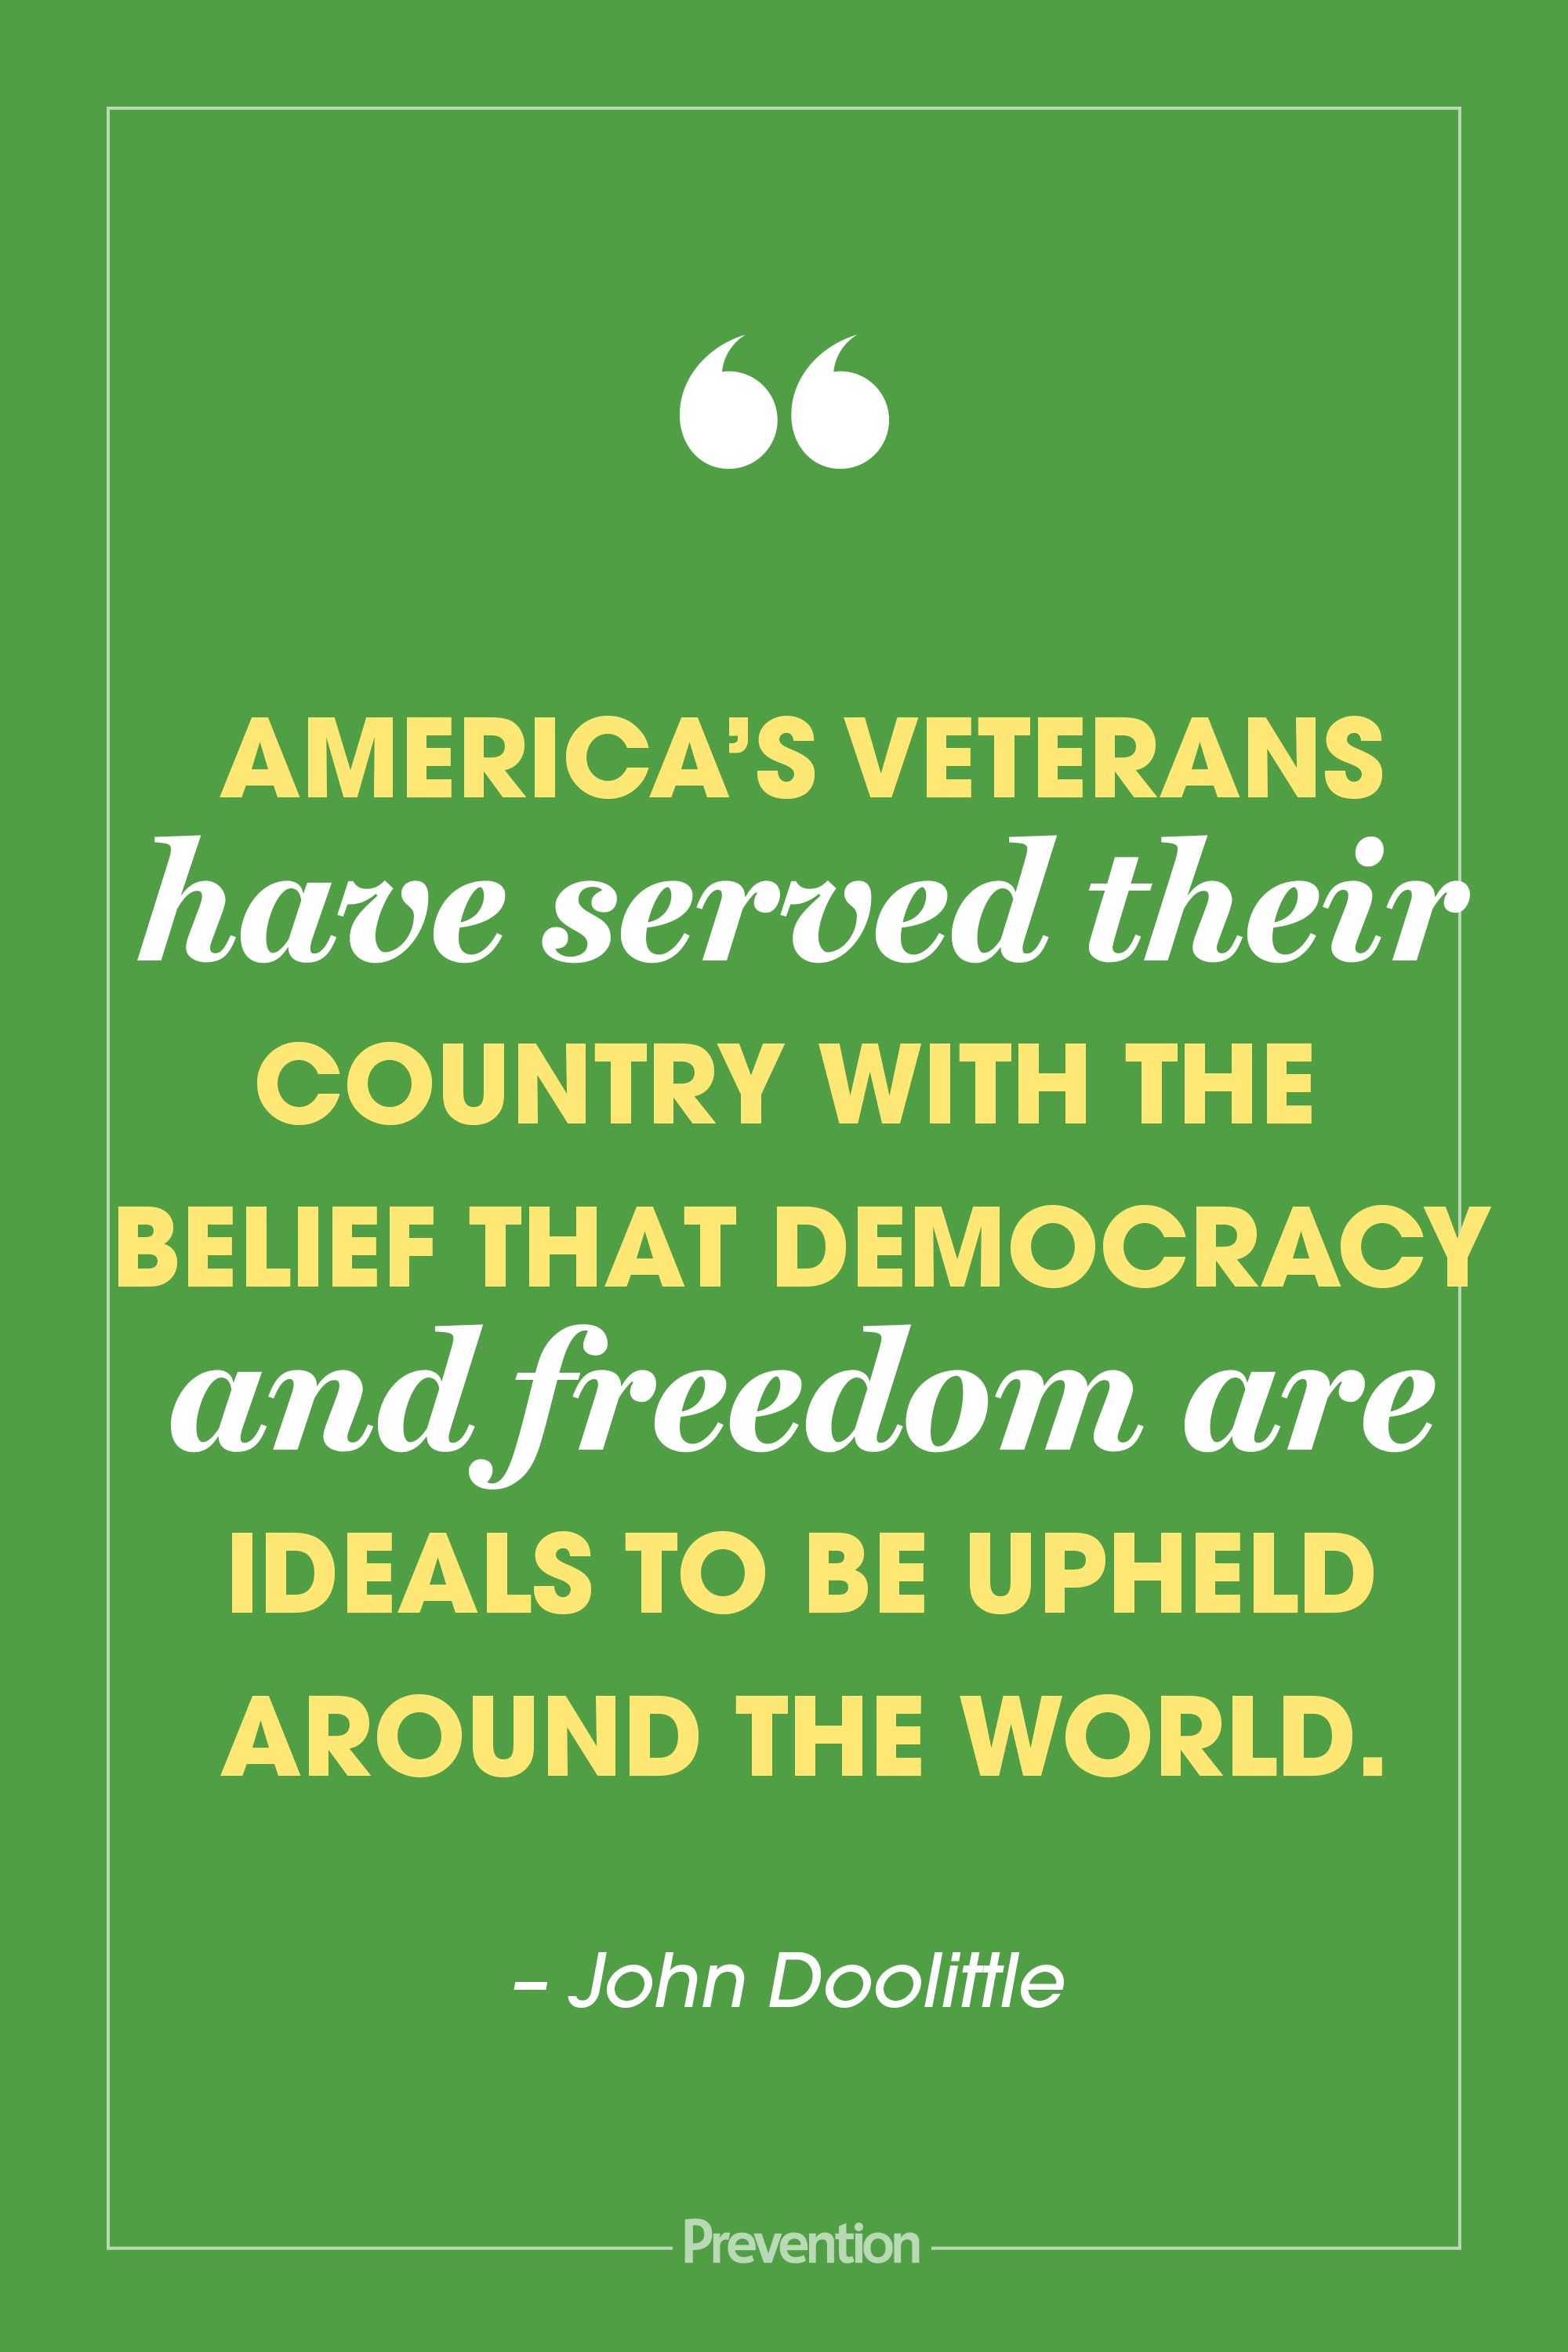 20 Inspiring Veterans Day Quotes To Honor Those Who Ve Served